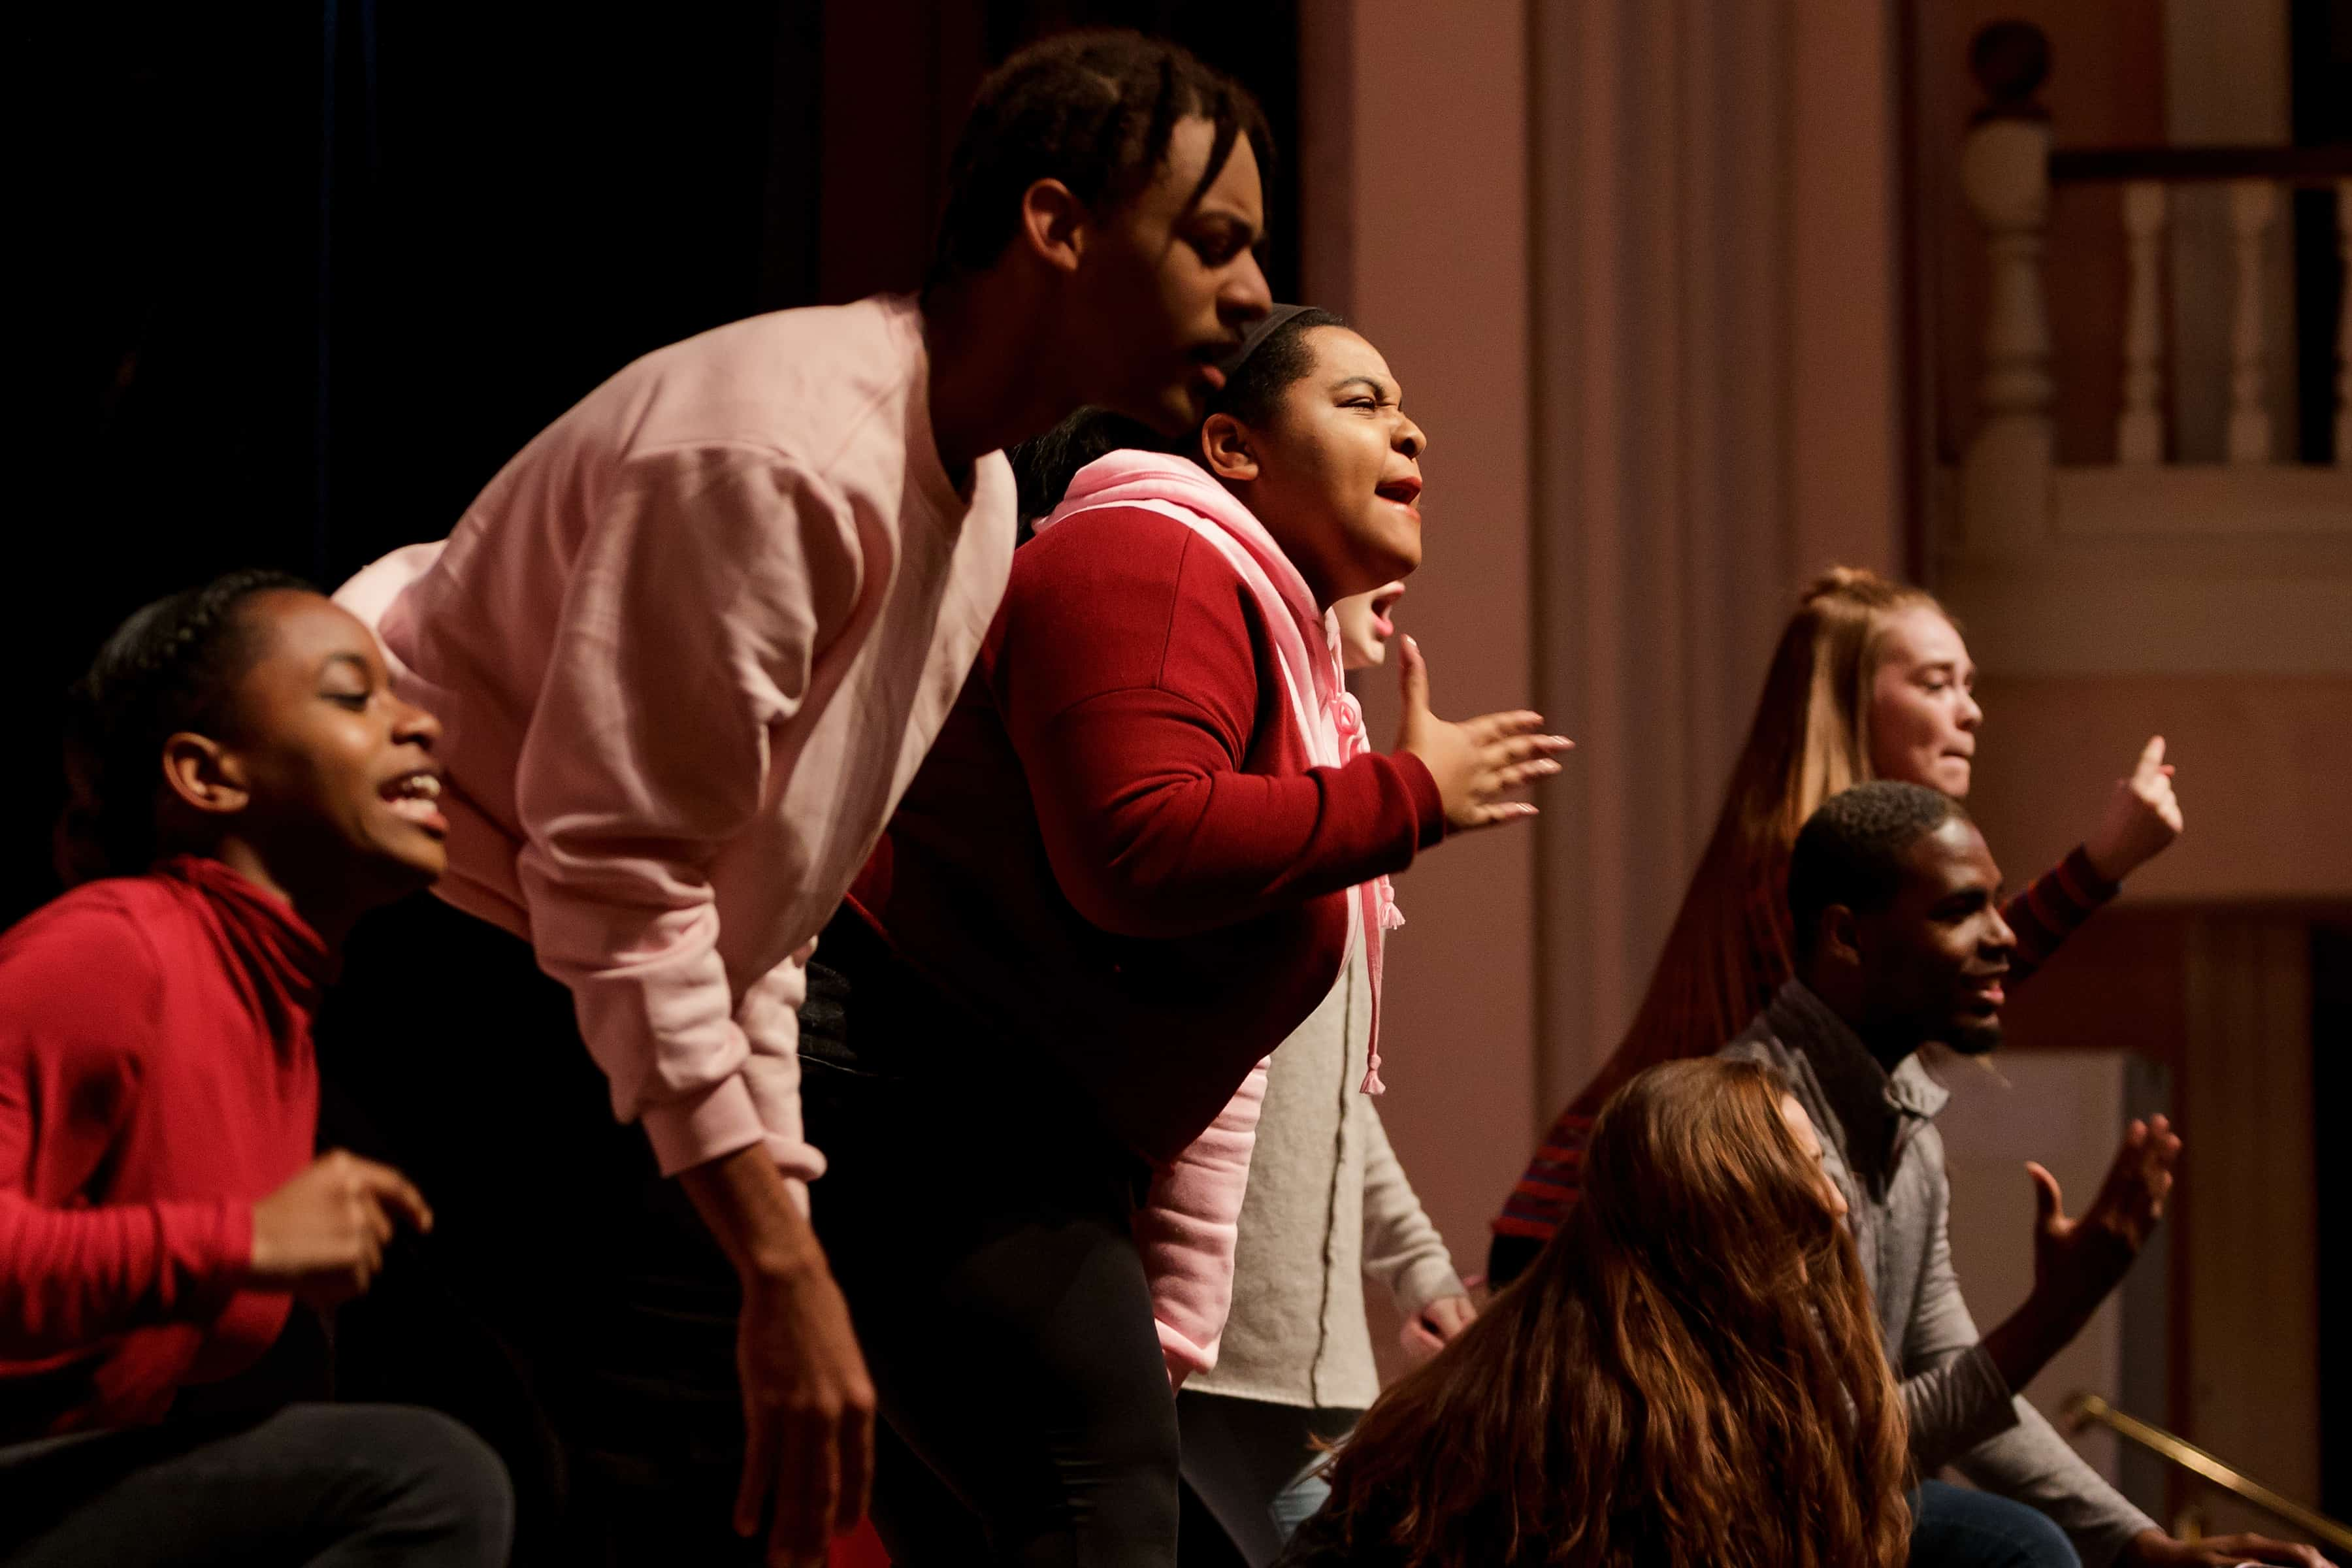 Students dance at the Brenau University Martin Luther King Jr. Convocation.